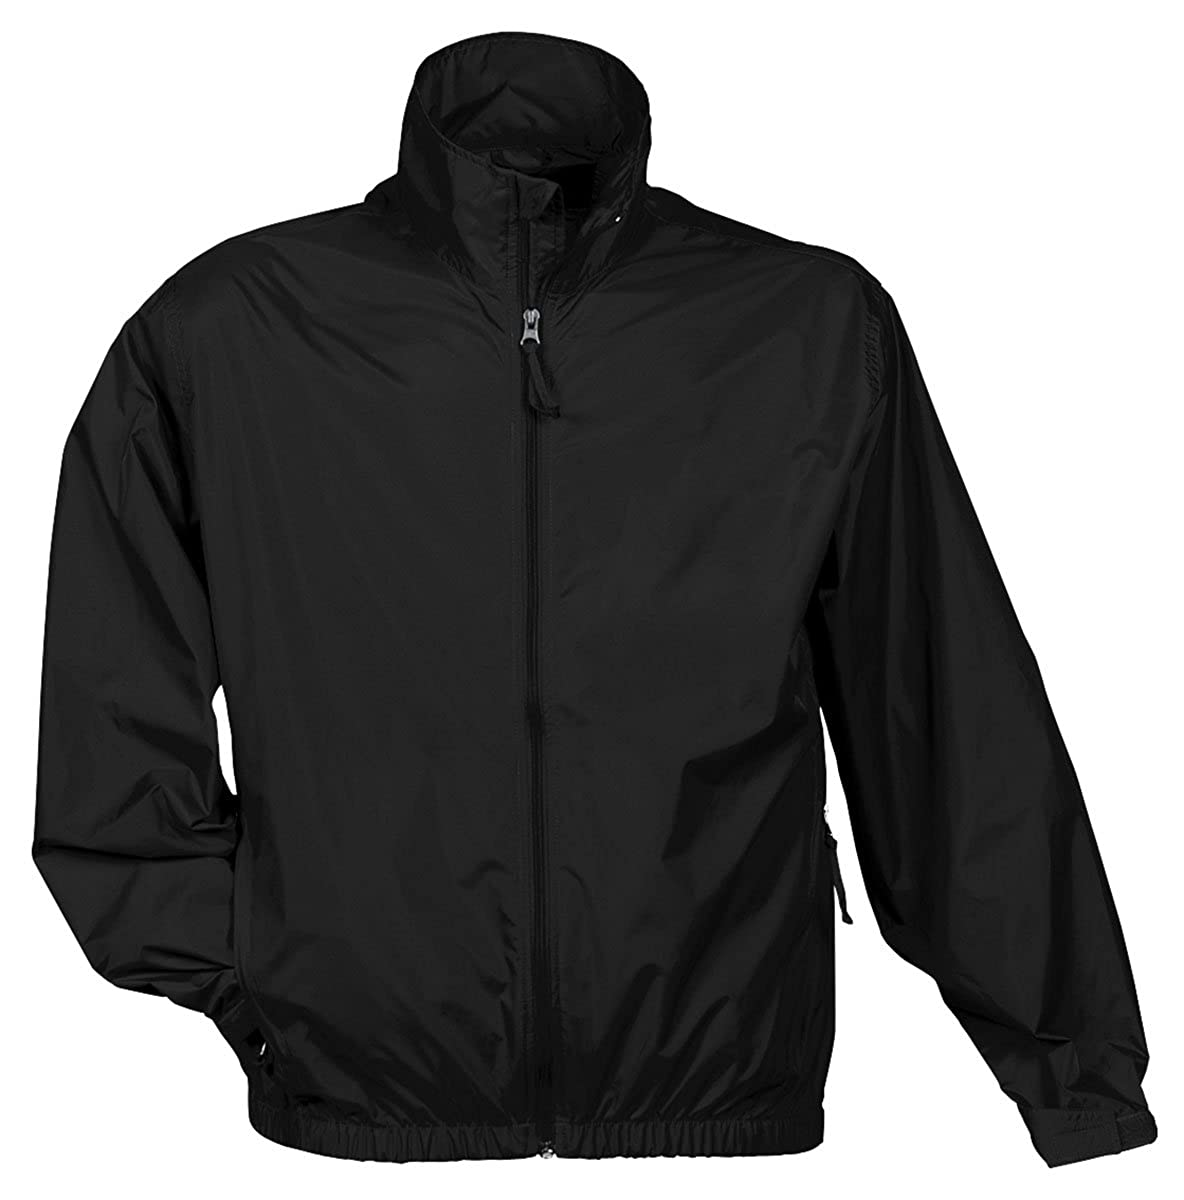 1e1bf4600 Tri-Mountain Lightweight Water Resistant Jacket - 1700 Atlas at ...